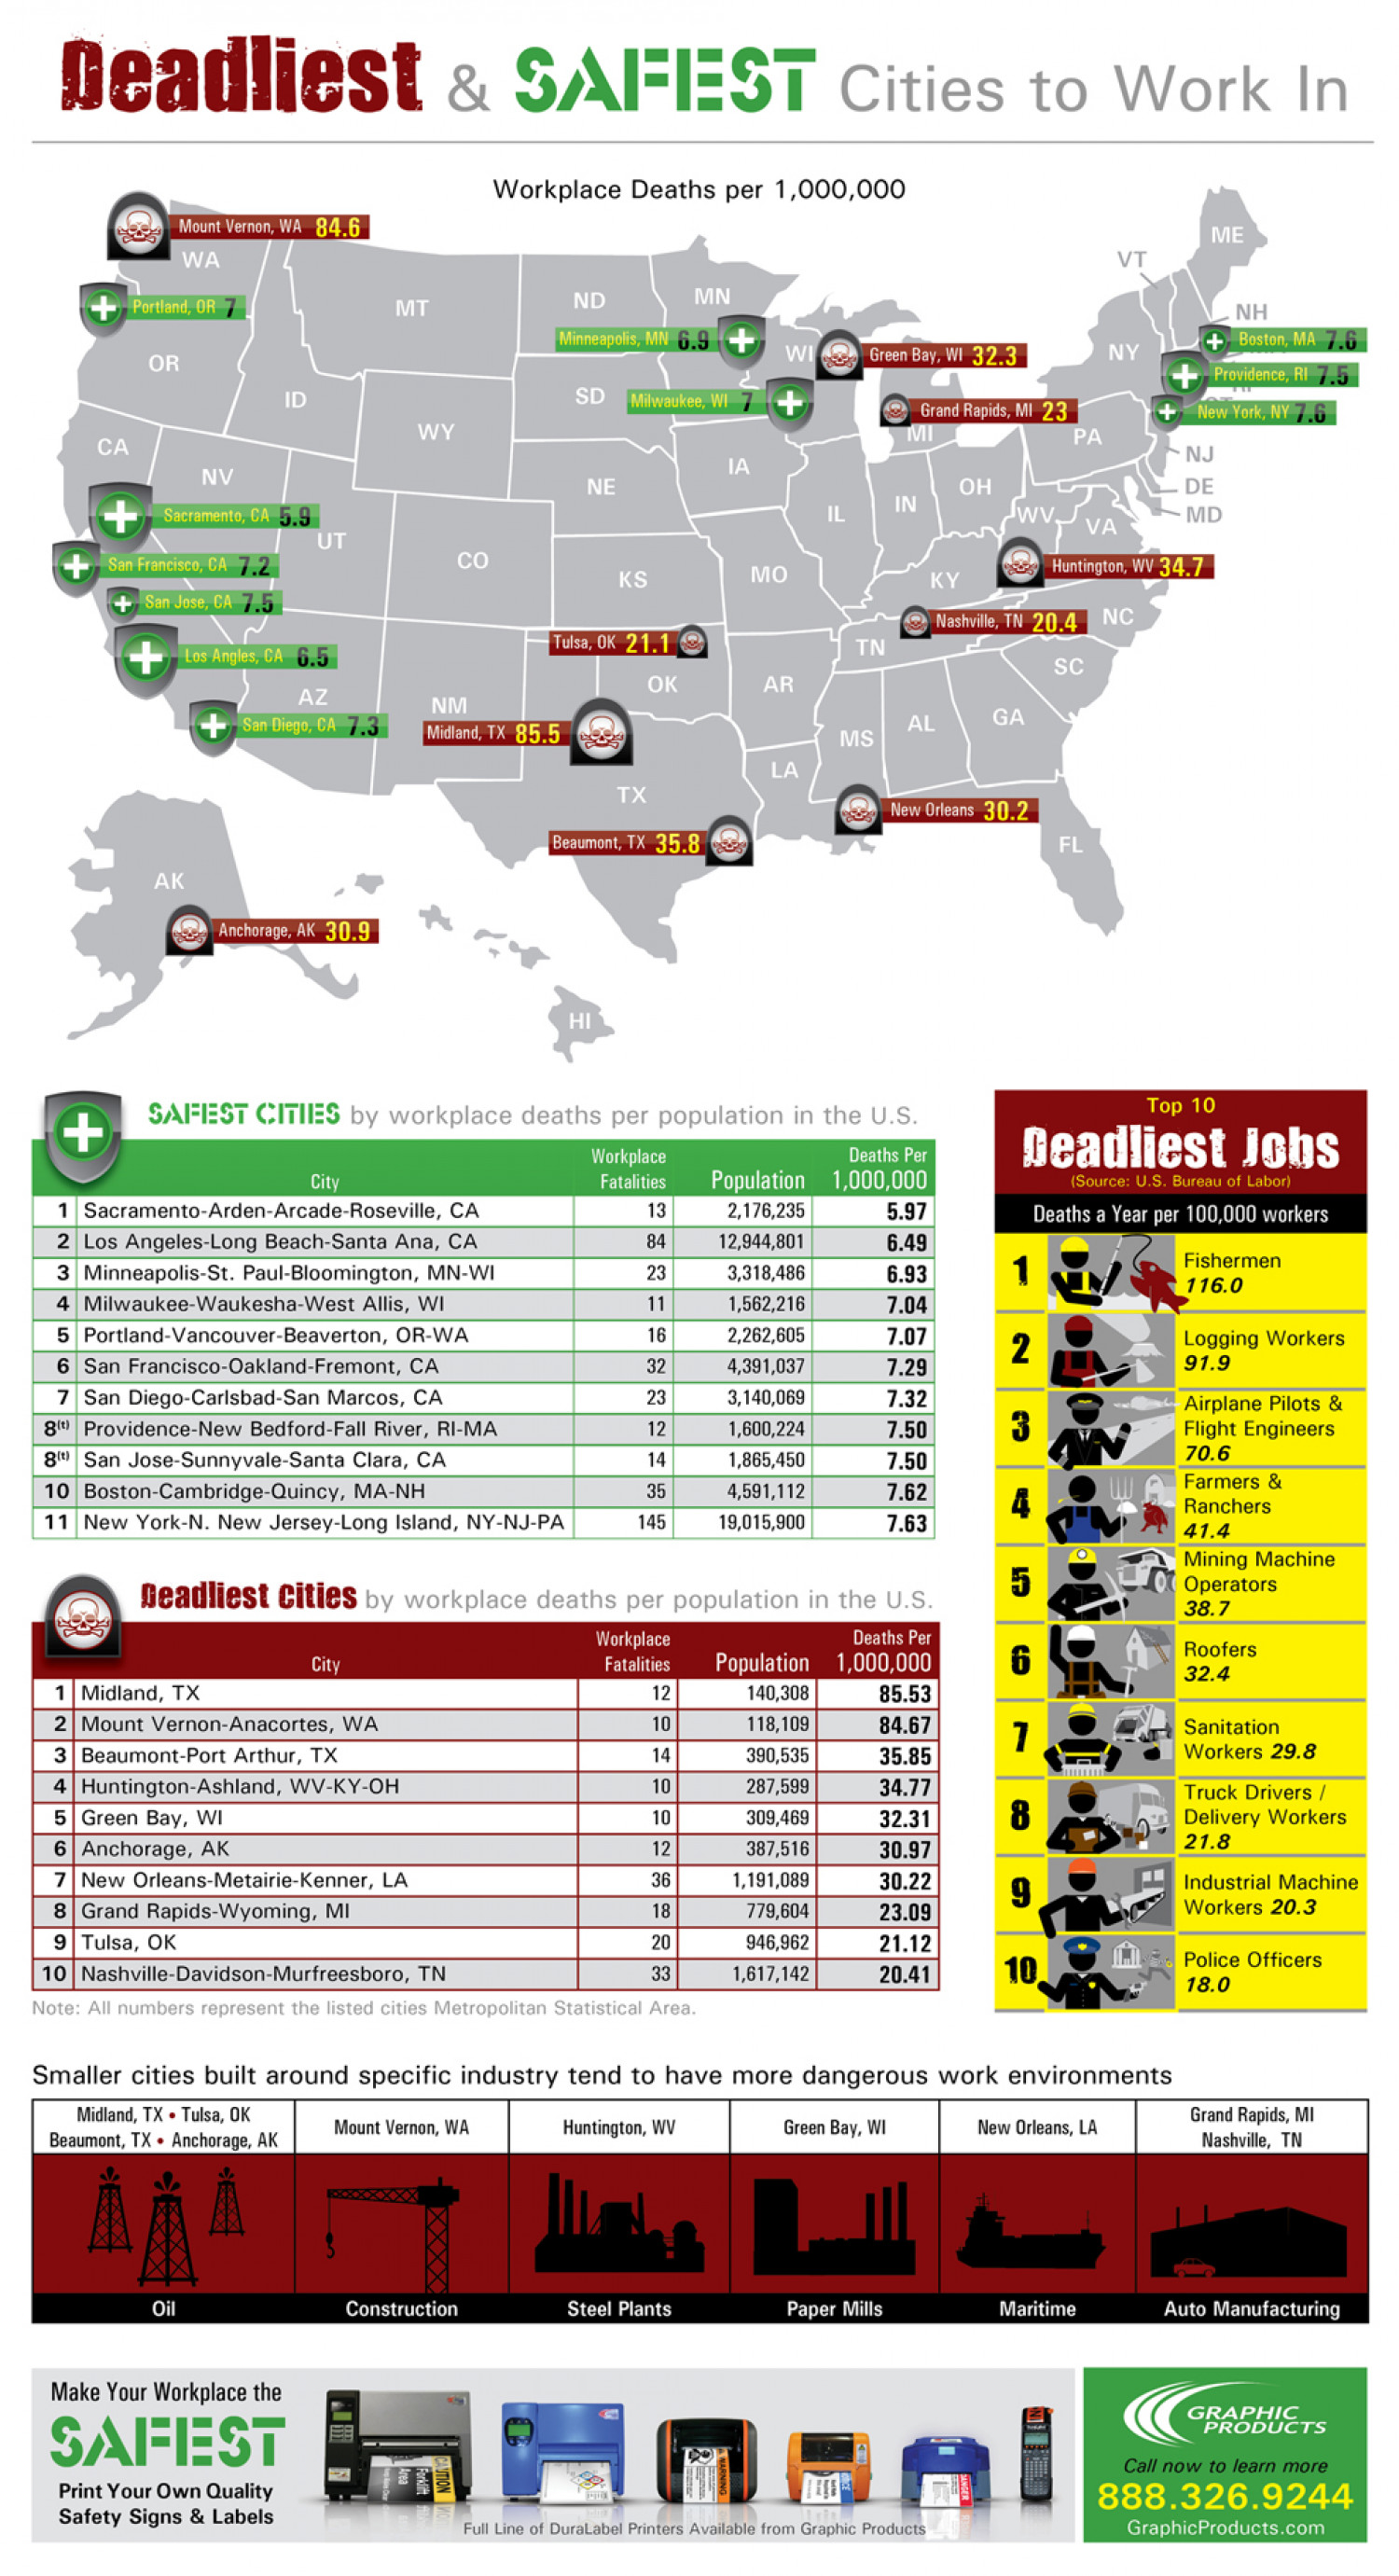 Deadliest Jobs and Safest and Deadliest Cities Infographic